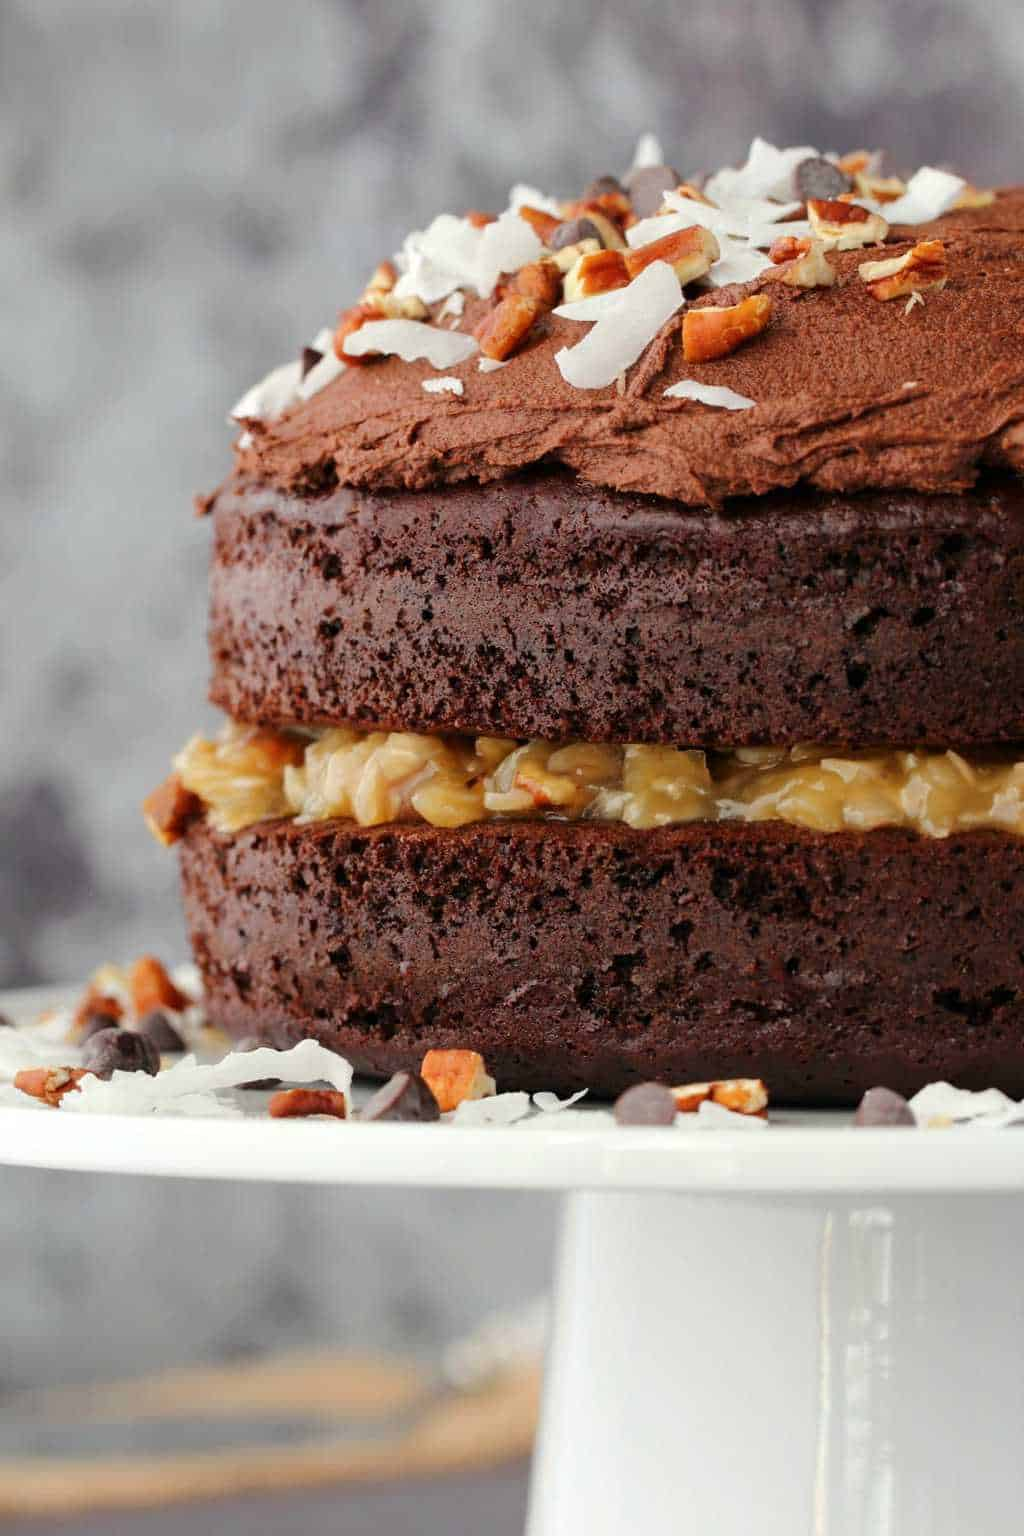 Vegan German chocolate cake decorated with pecans, coconut flakes and chocolate chips, on a white cake stand.